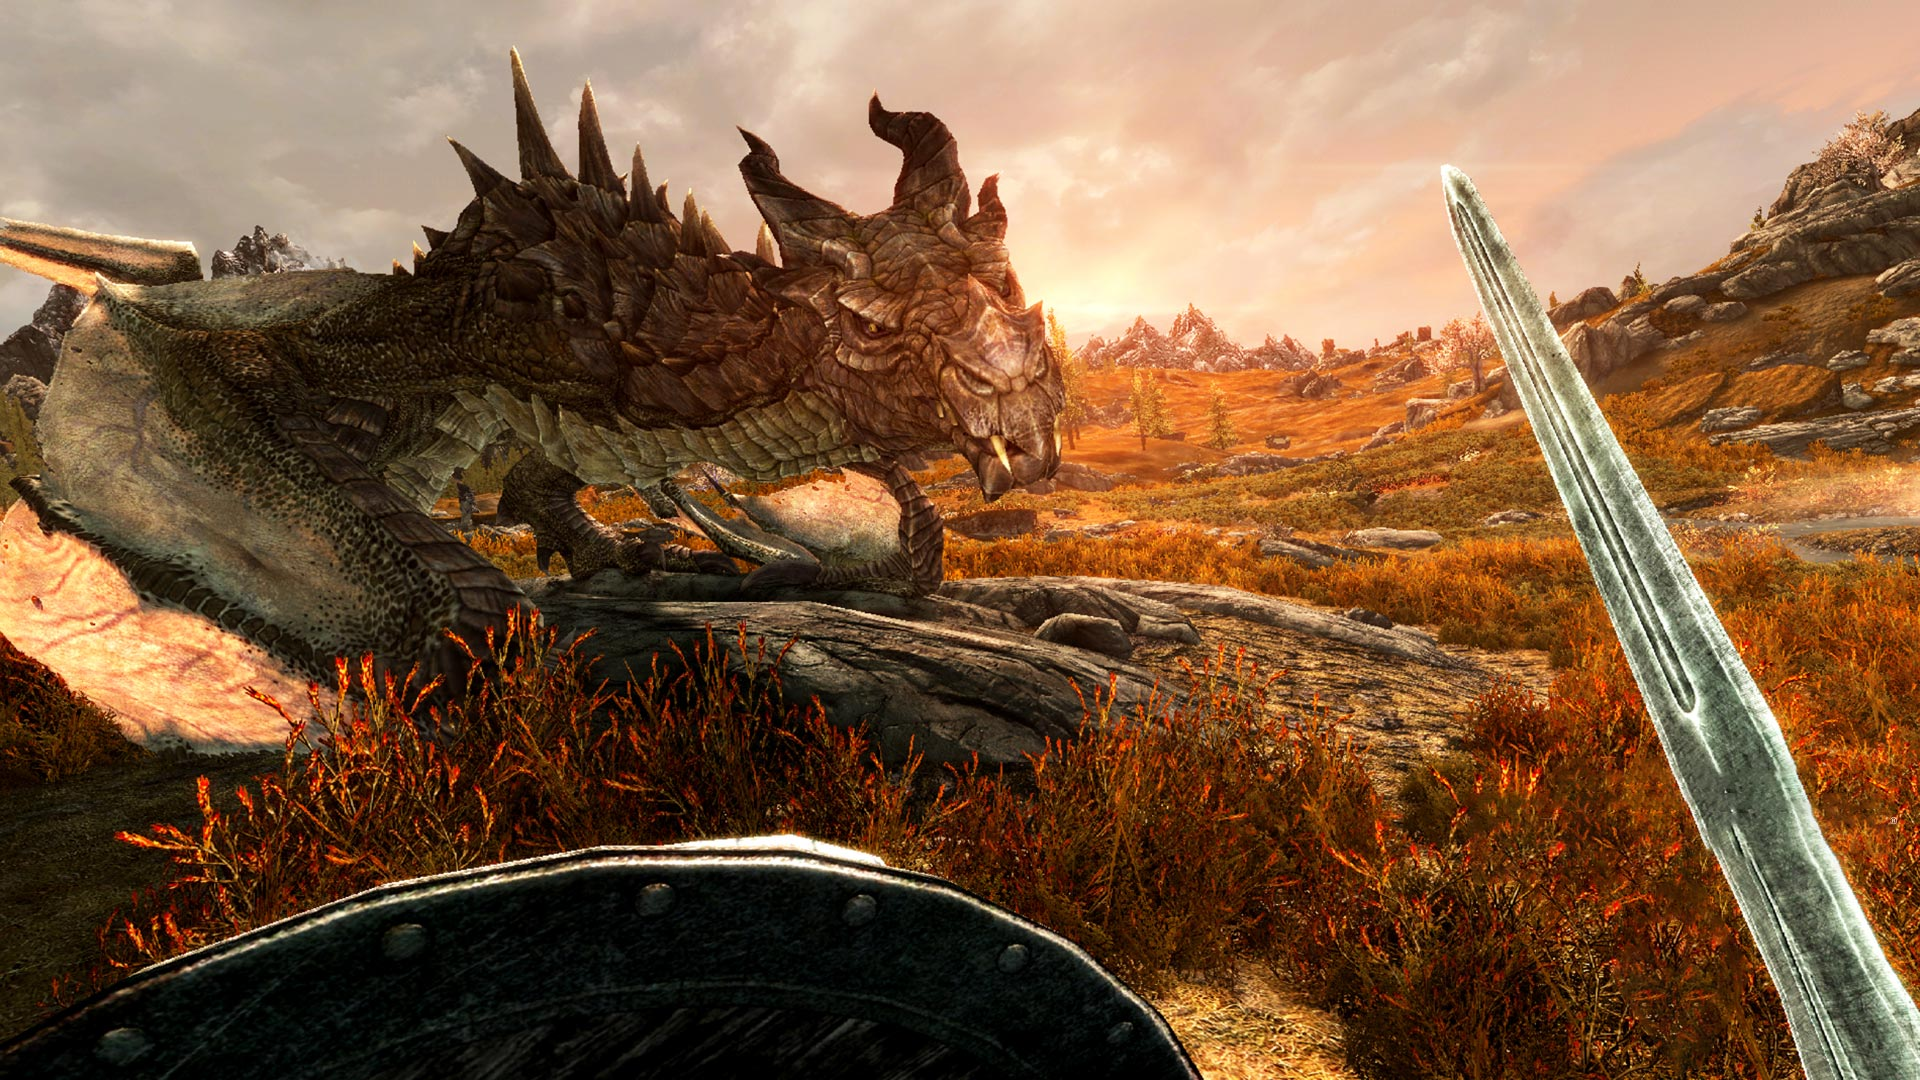 u0026 39 skyrim vr u0026 39  for pc  vive  rift   u0026 windows vr  review  u2013 a